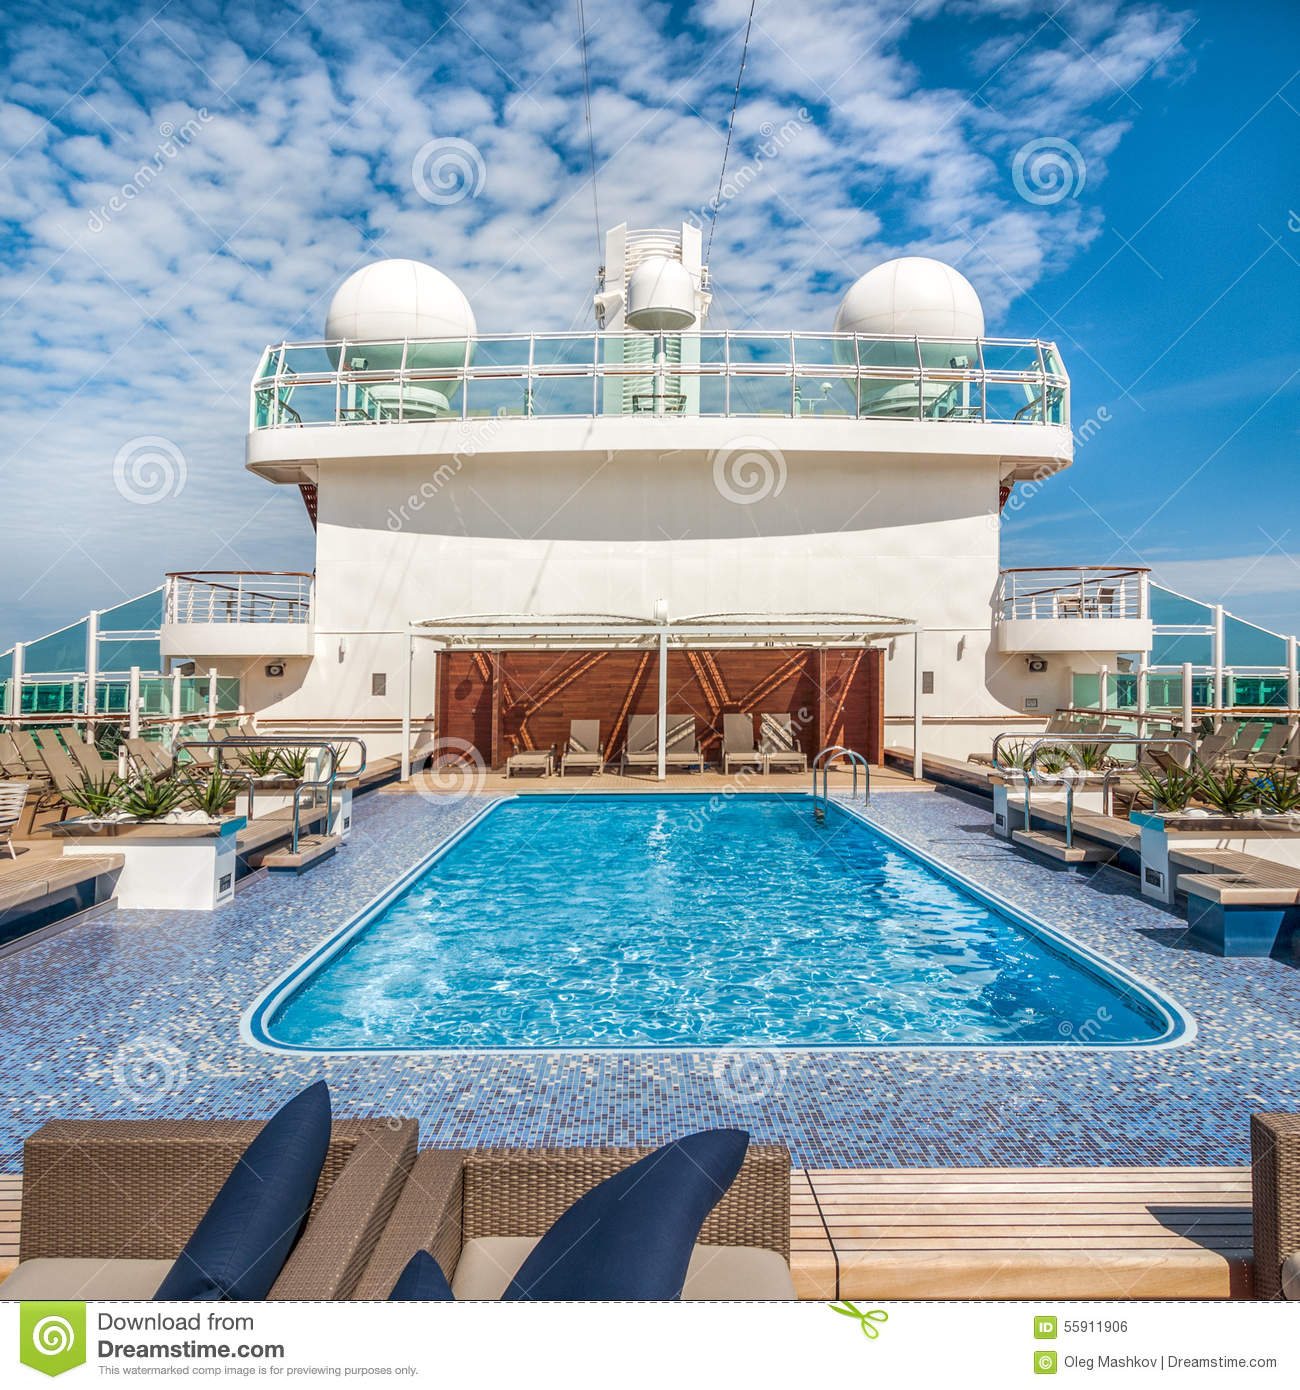 Pool on a cruise ship stock photo. Image of luxury, deck ...